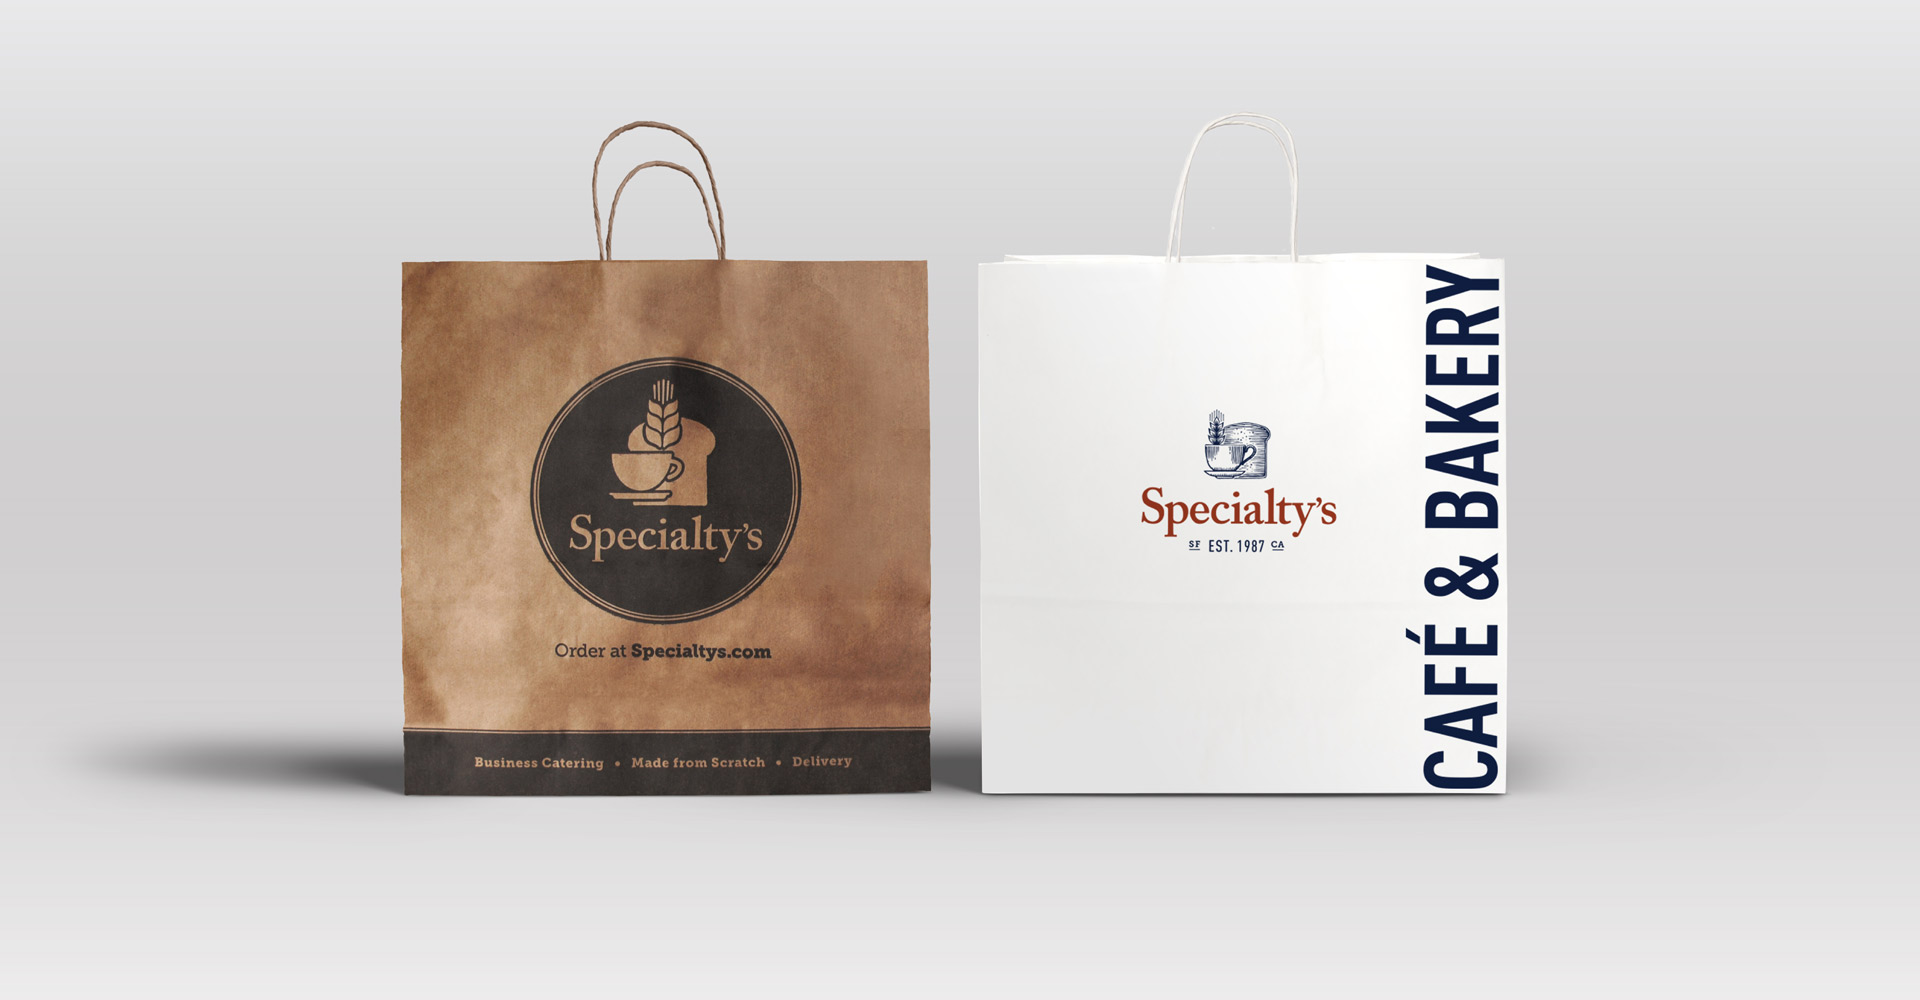 Creative_Retail_Packaging_Design_Specialtys_Cafe_Bakery-03.jpg